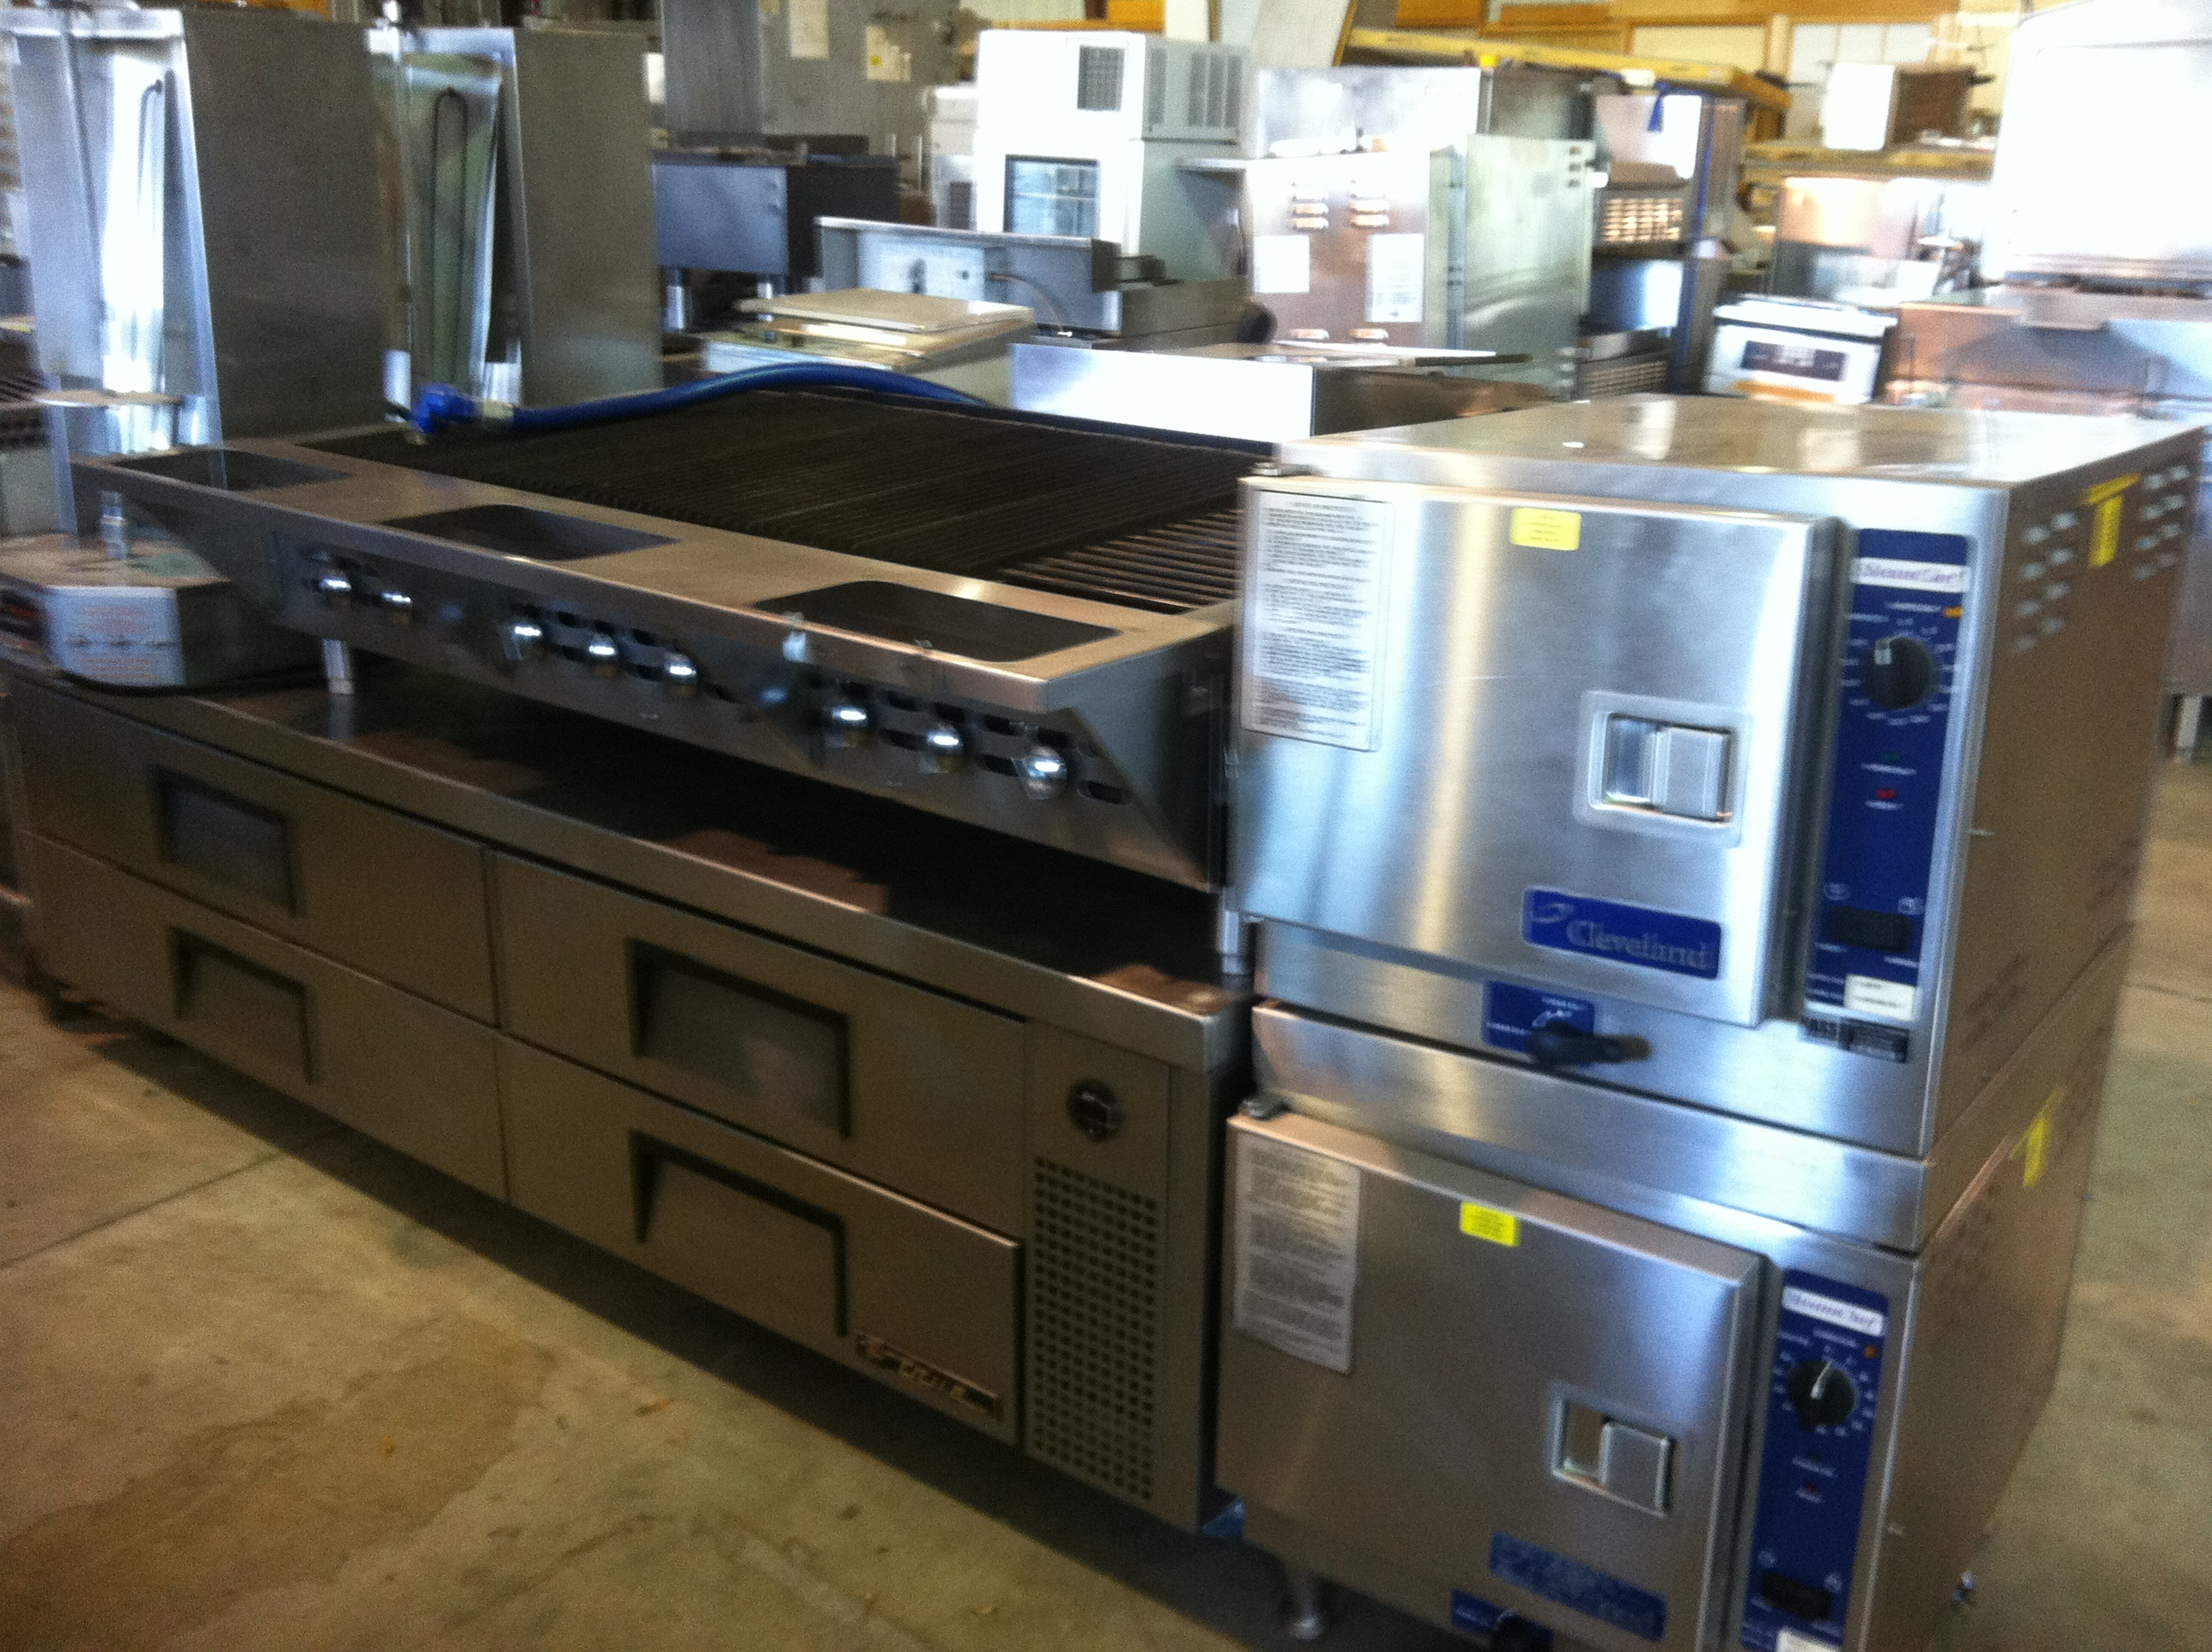 kitchen equipment used cabinets online restaurant for churches hospitals daycare centers etc